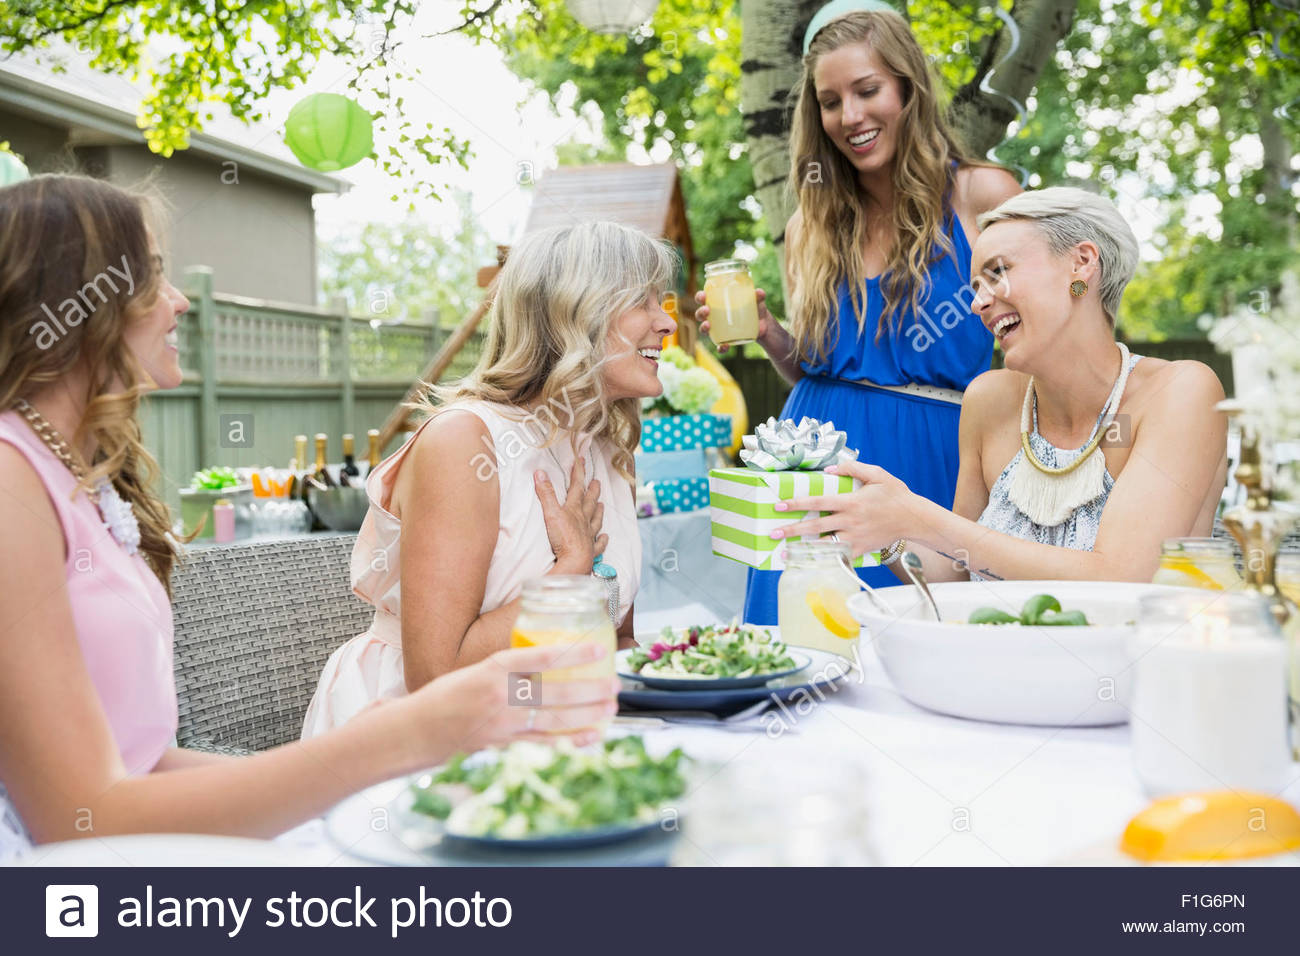 Woman receiving birthday gift at garden party lunch - Stock Image